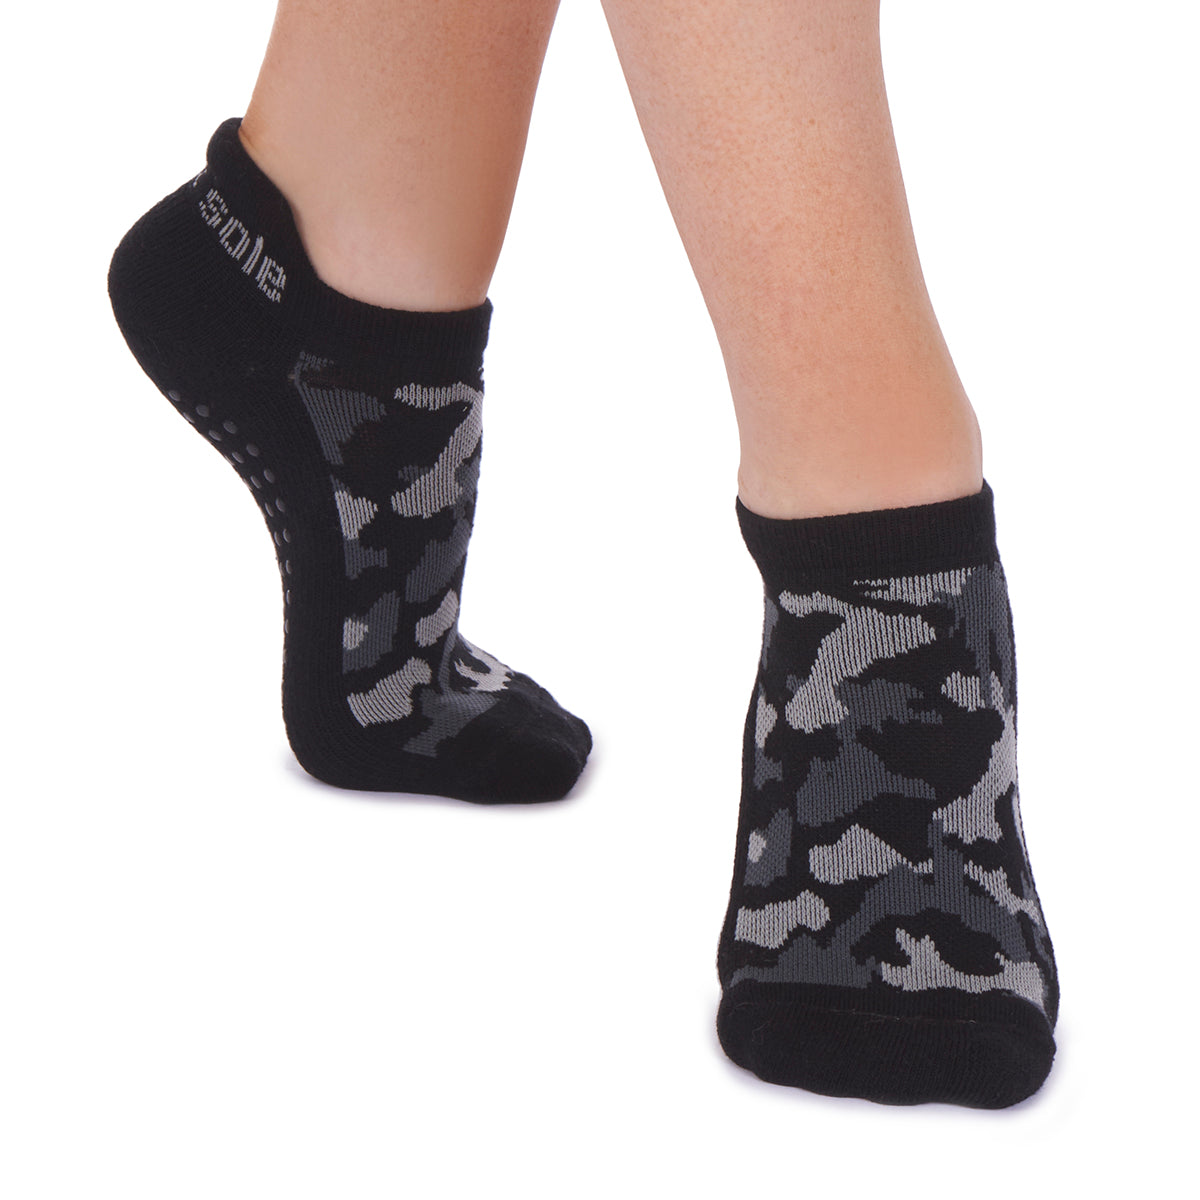 Harley Tab Back Grip Sock - Grey/Black